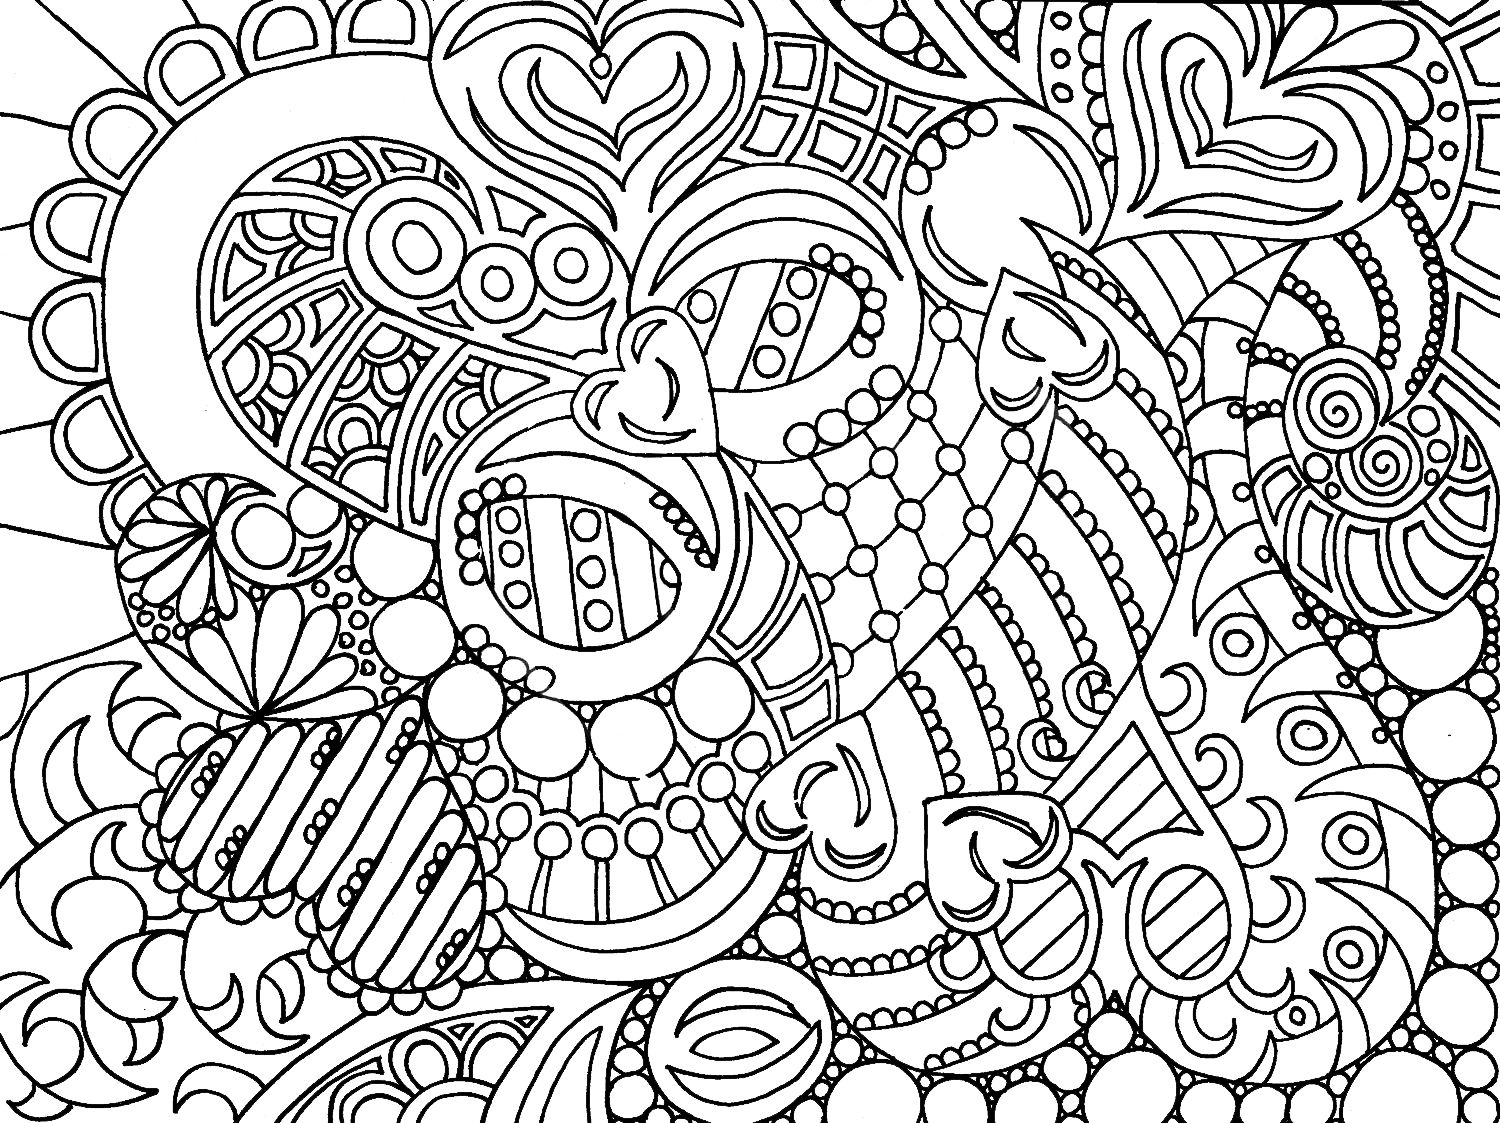 adults coloring book online : Advanced Coloring Pages Adults Coloring Pages Pictures Imagixs